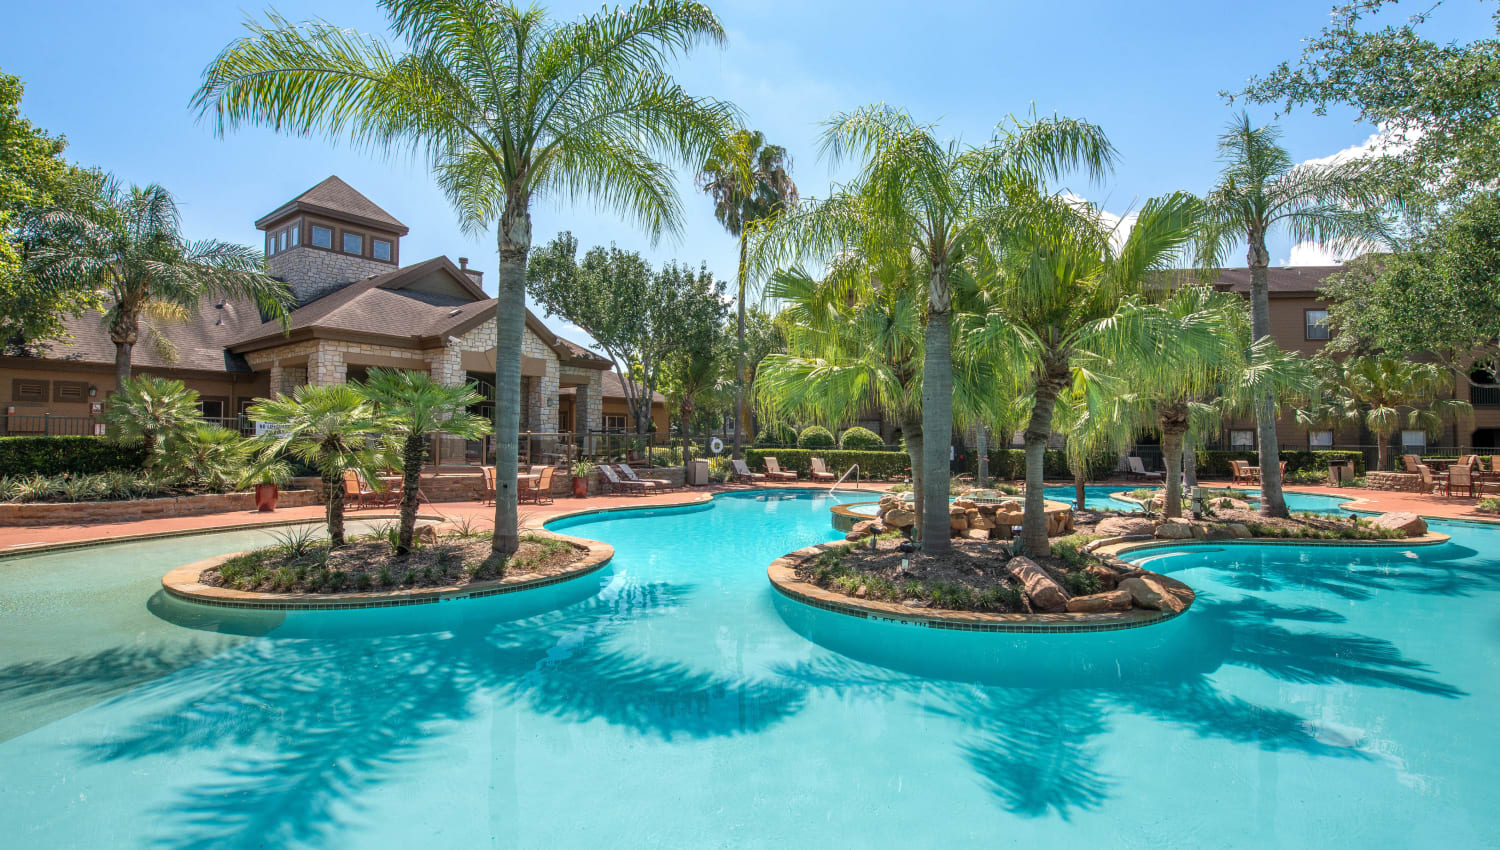 Islands with palm trees in the pool at The Ranch at Shadow Lake in Houston, Texas